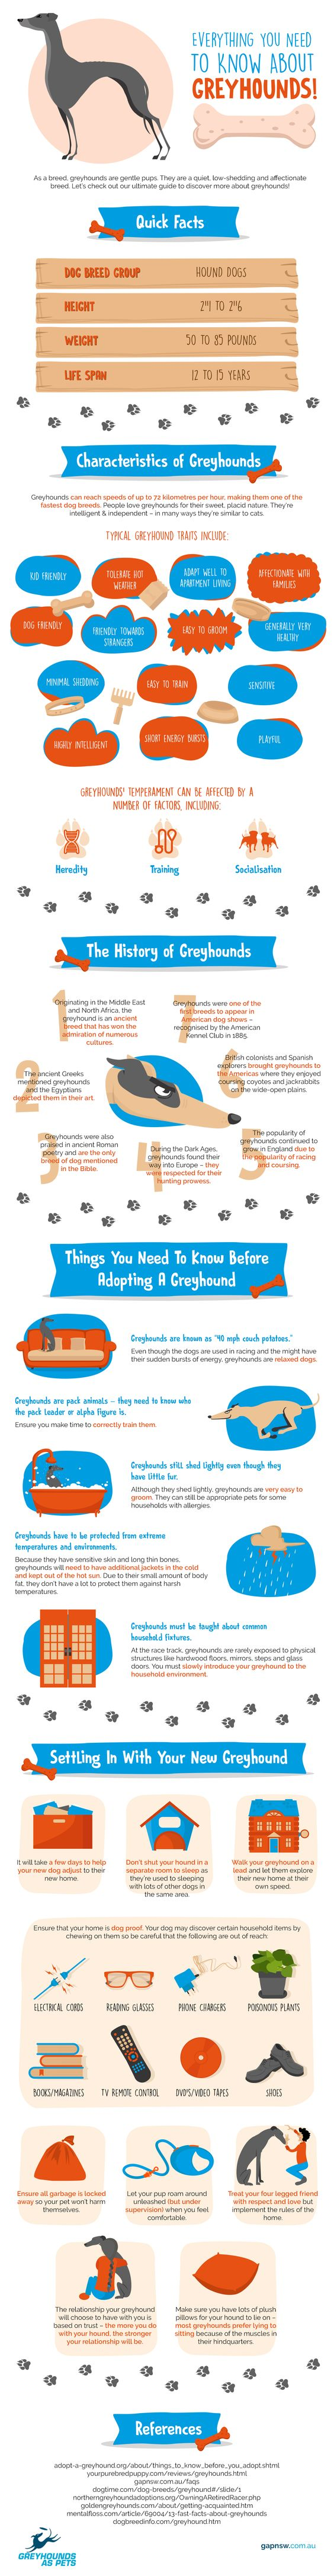 Greyhounds can reach speeds of up to 45 miles per hour